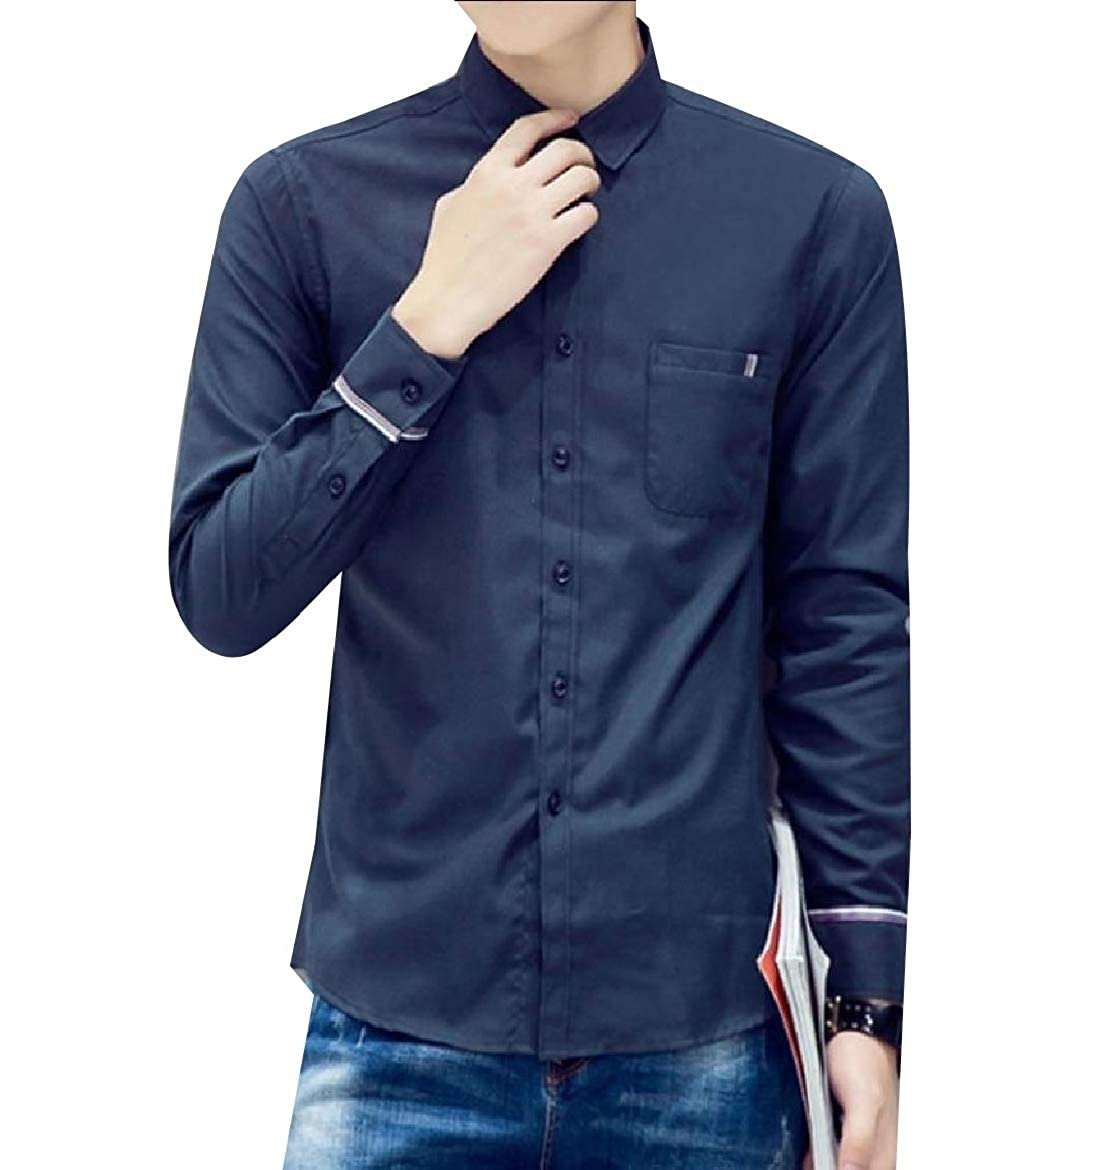 YUNY Men Business Slim Fitting Oversized Classic Solid Western Shirt Navy Blue S